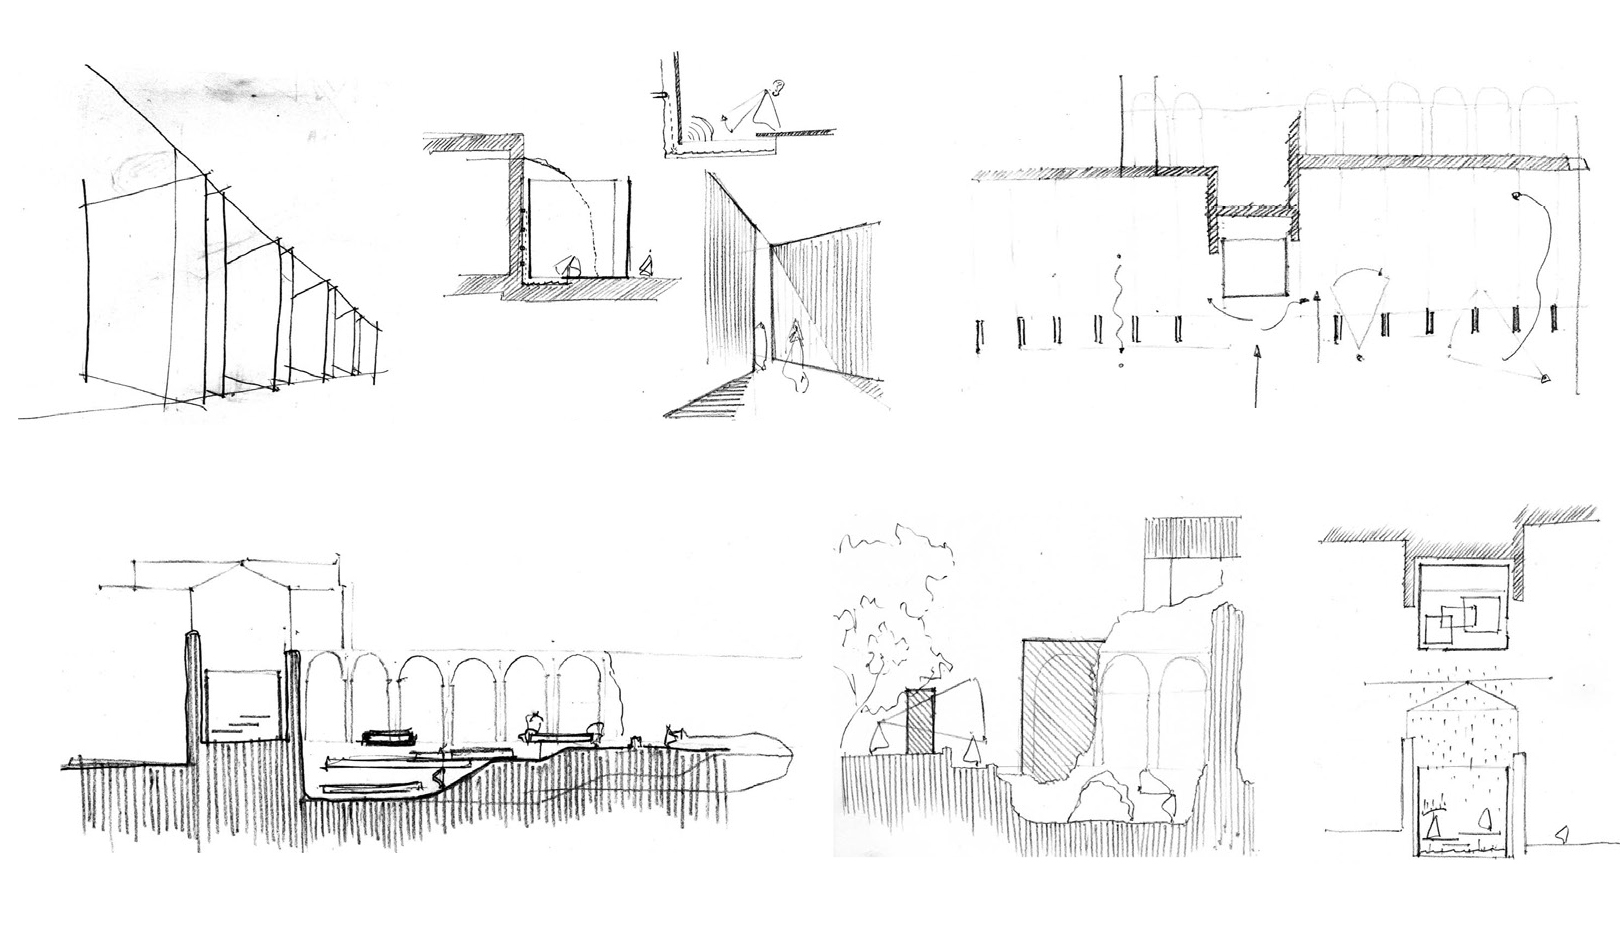 Thermes de Cluny sketch design by Bolter Design